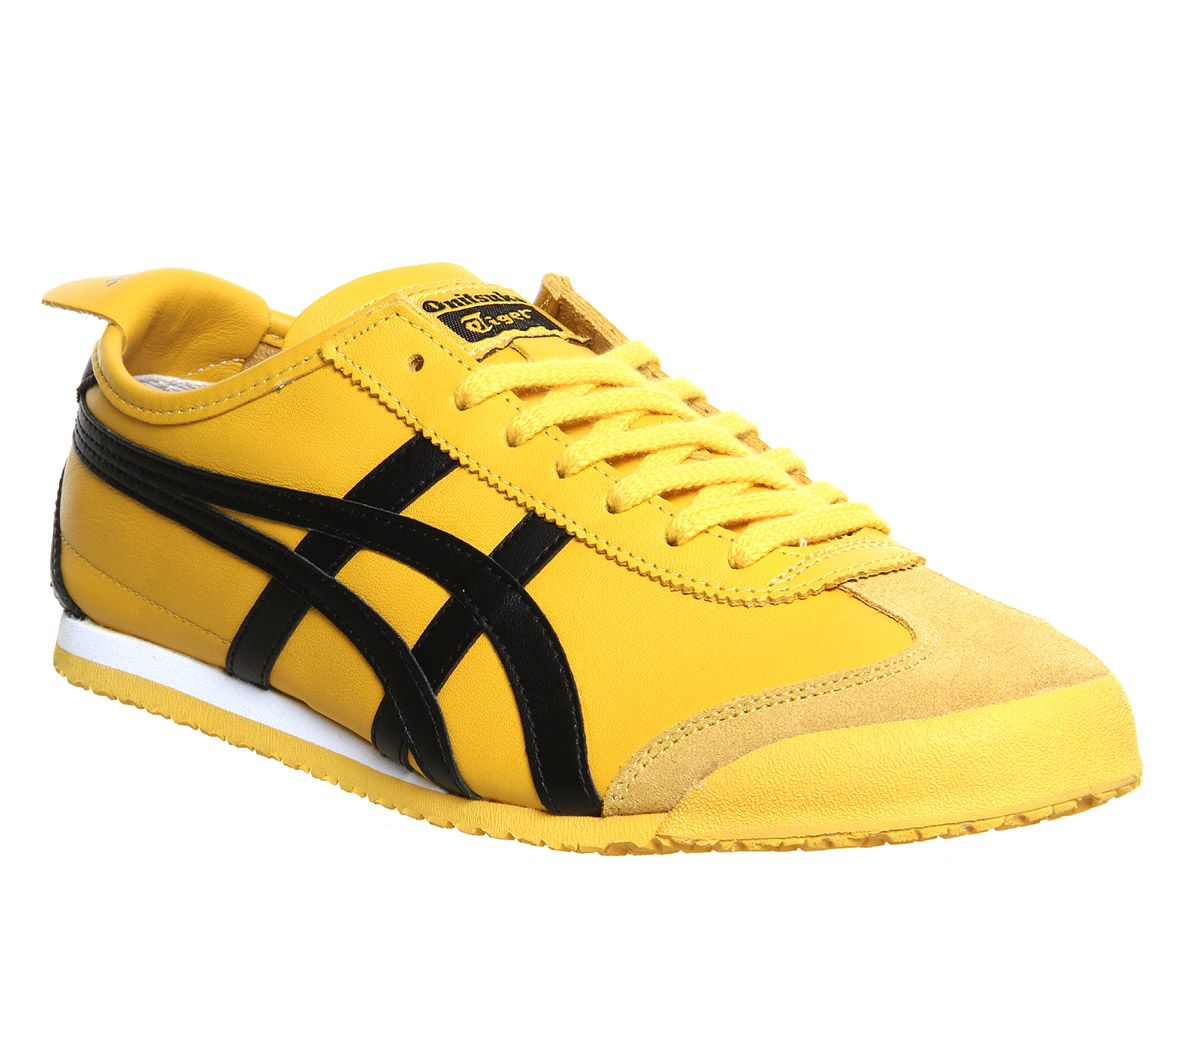 new product 99052 818fb Onitsuka Tiger Mexico 66 Yellow Black - Unisex Sports